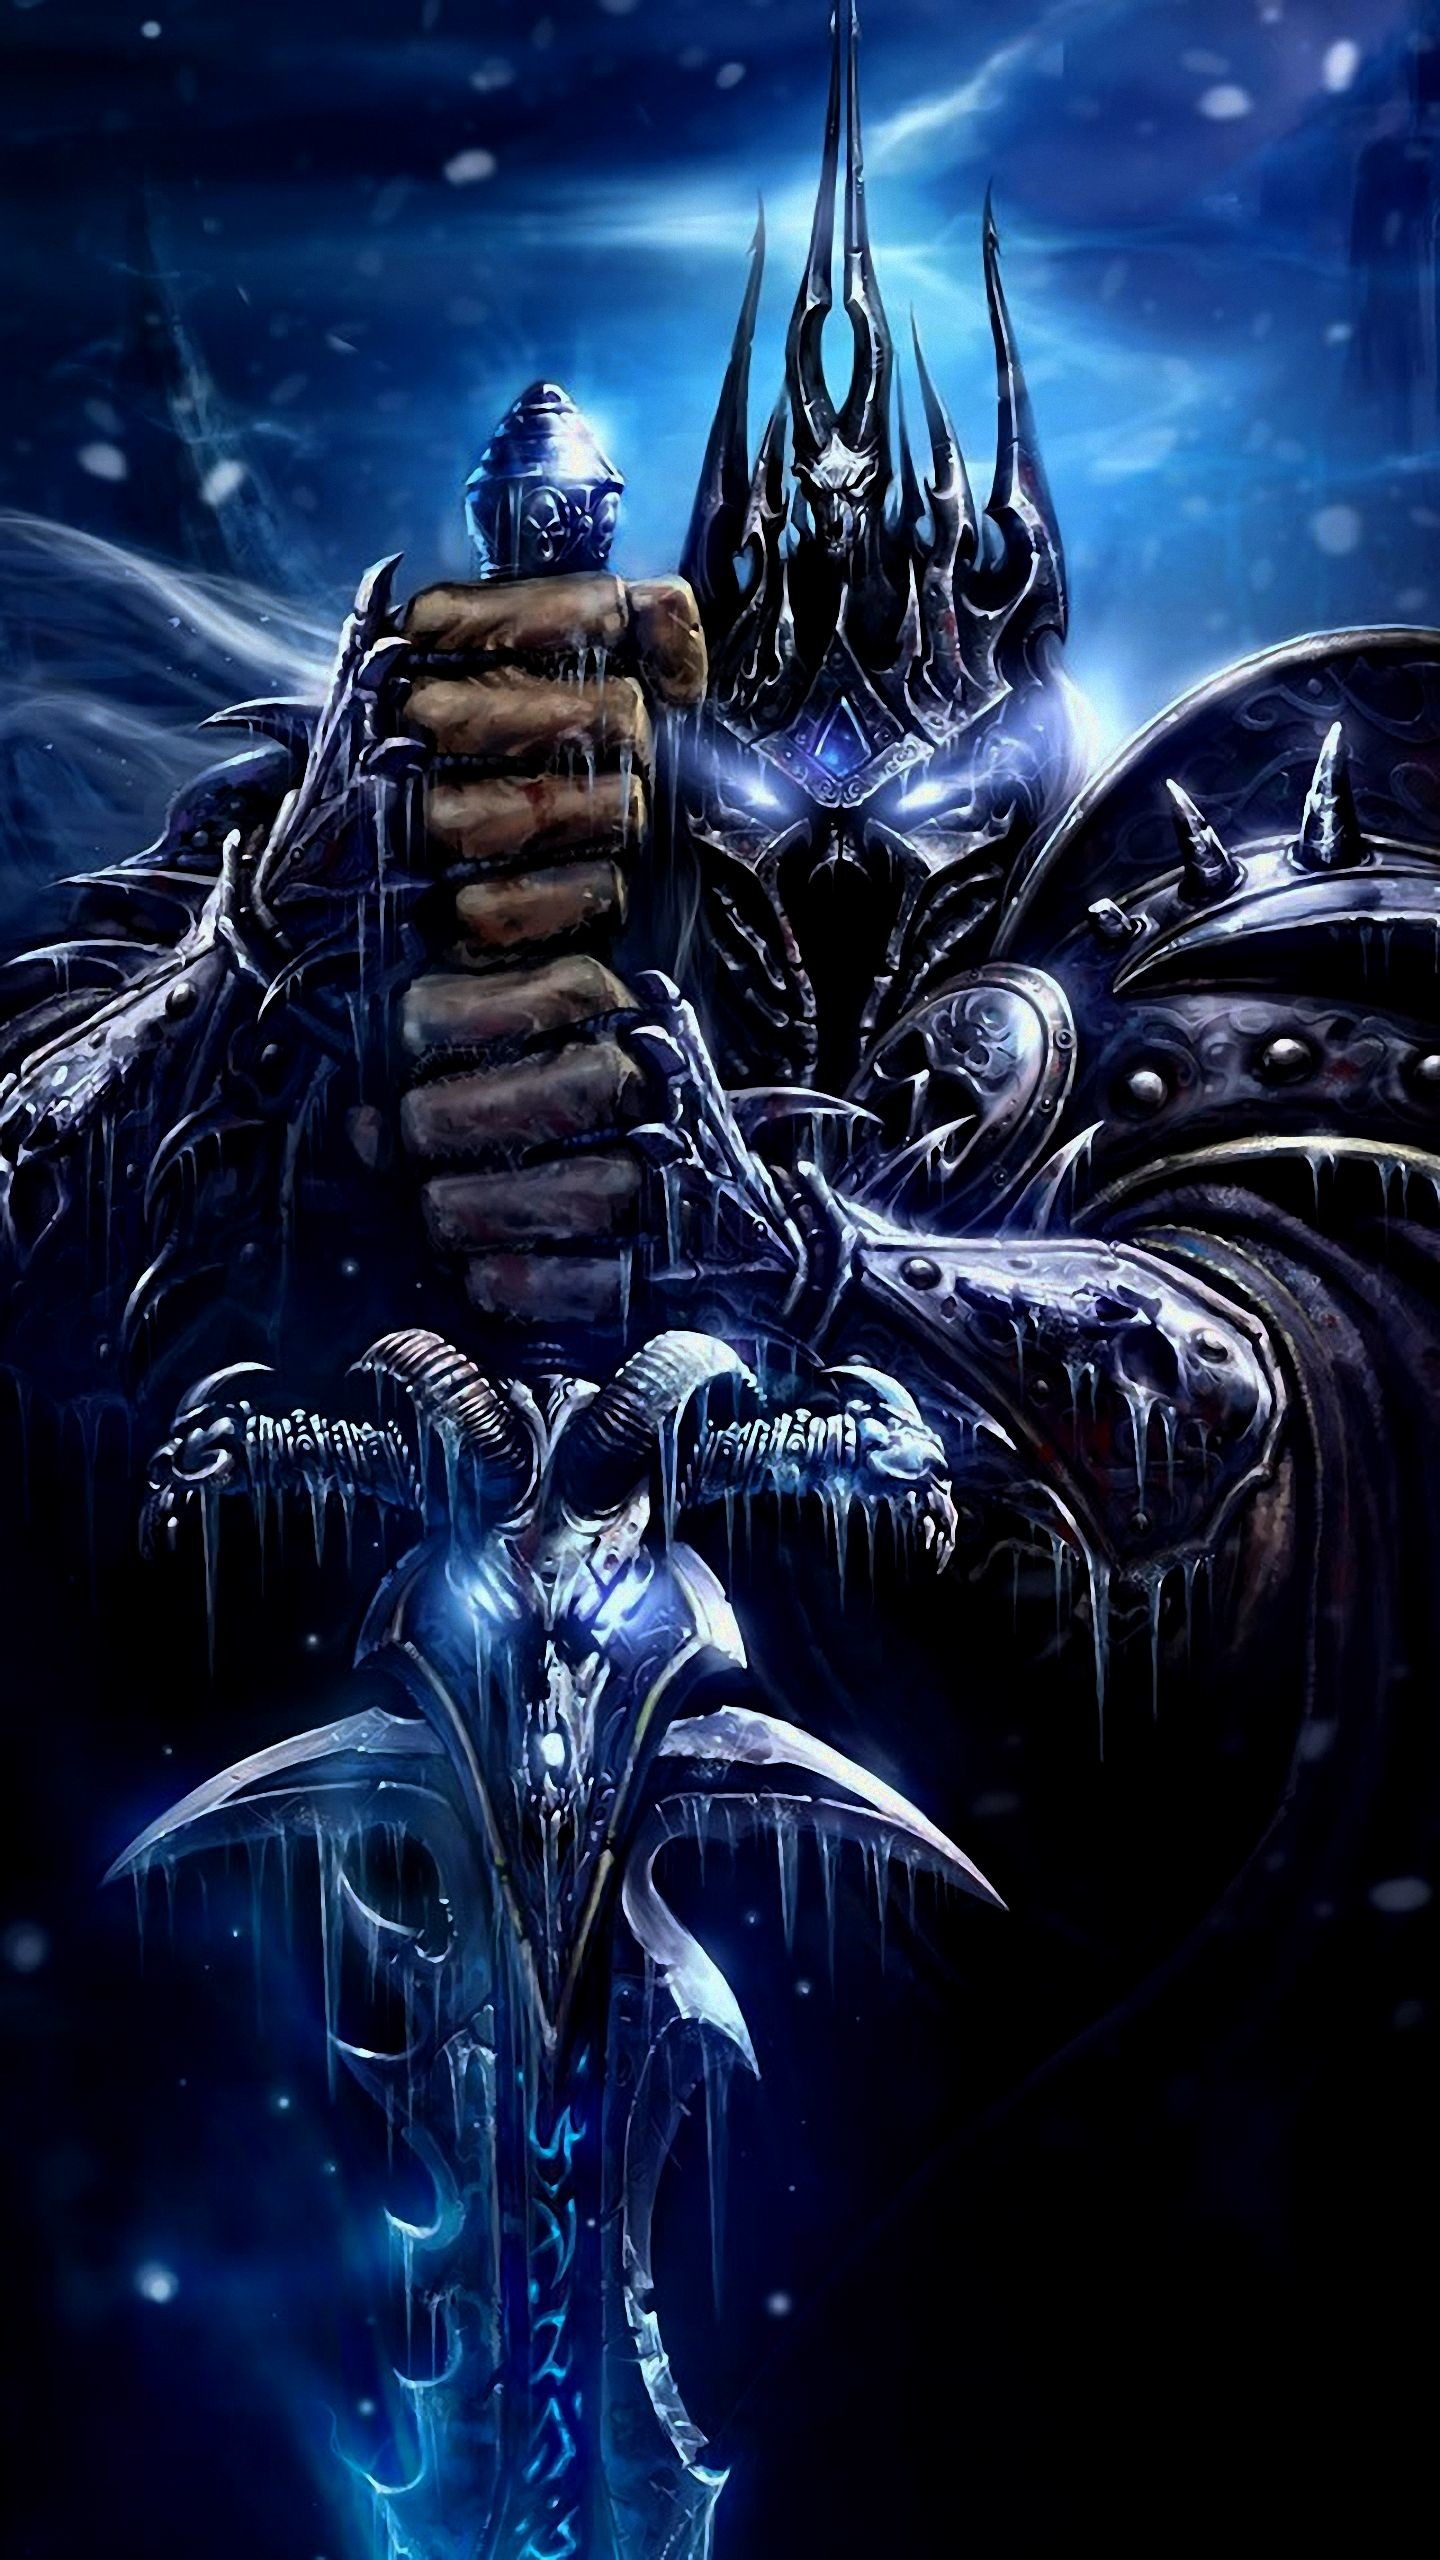 1440x2560 Mobile Phone x World of warcraft Wallpapers HD Desktop